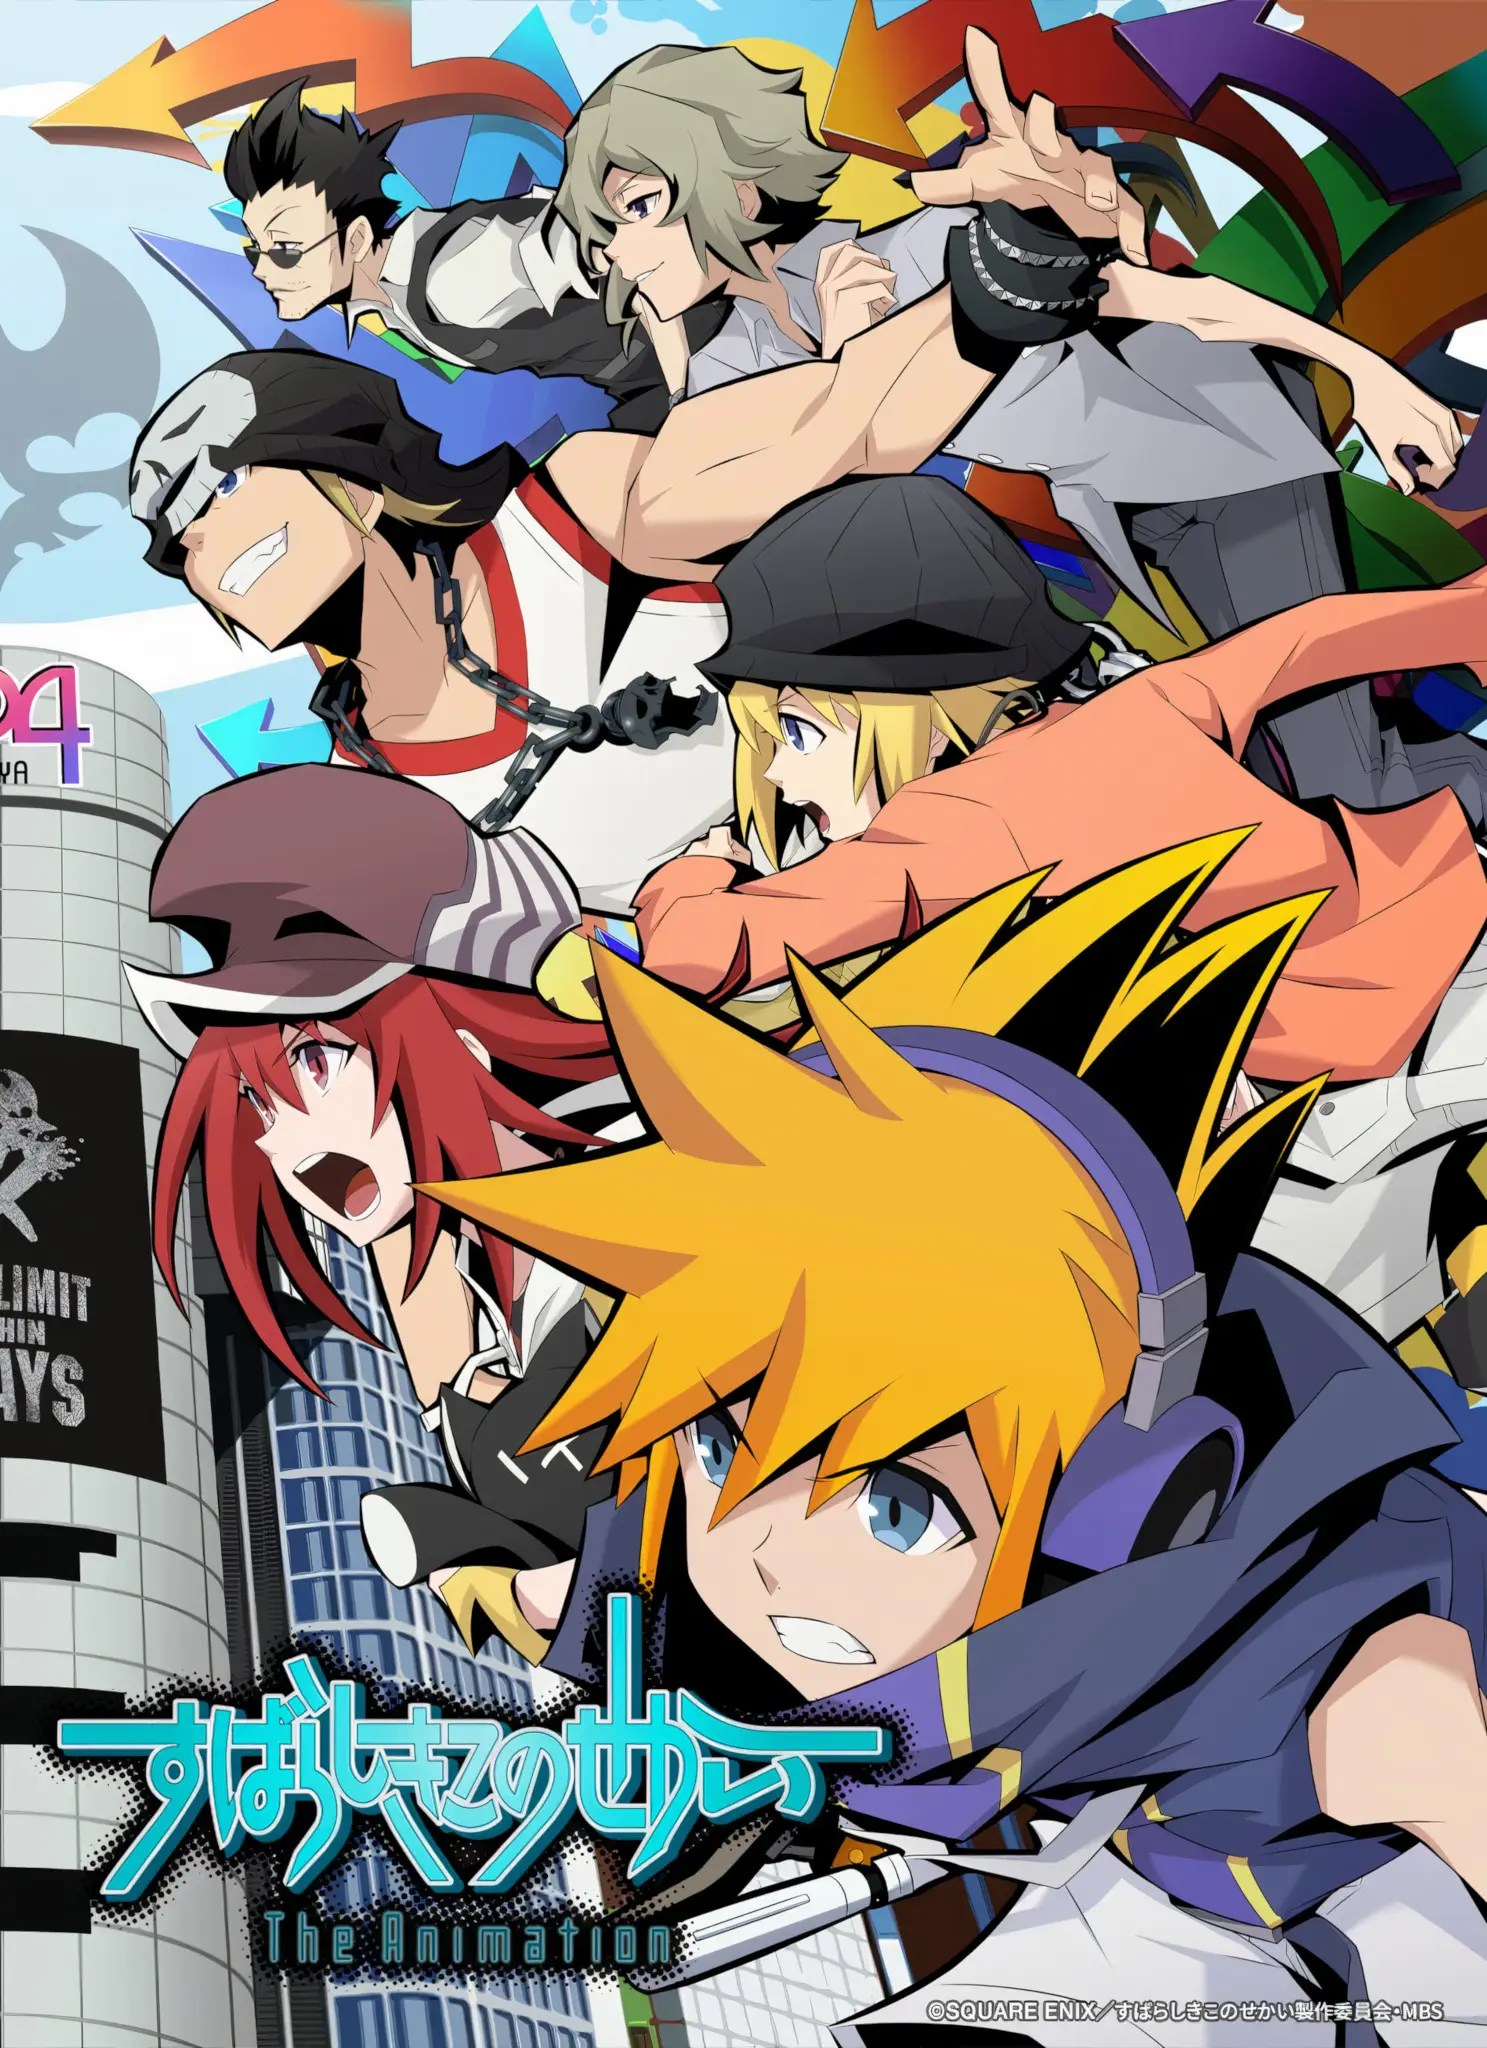 Annonce de anime The World Ends With You, en trailer 2